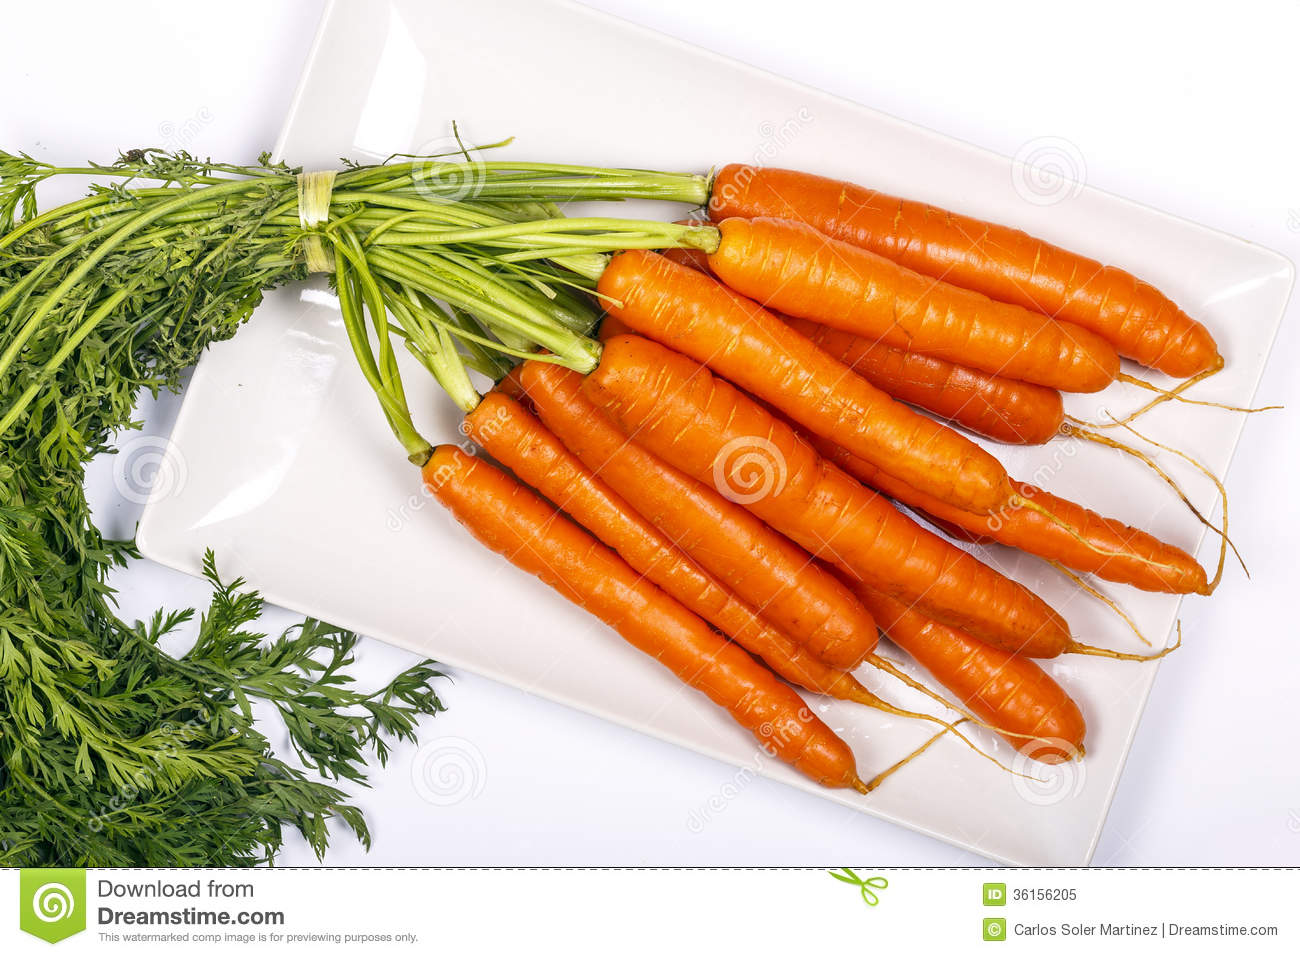 how to cook whole carrots